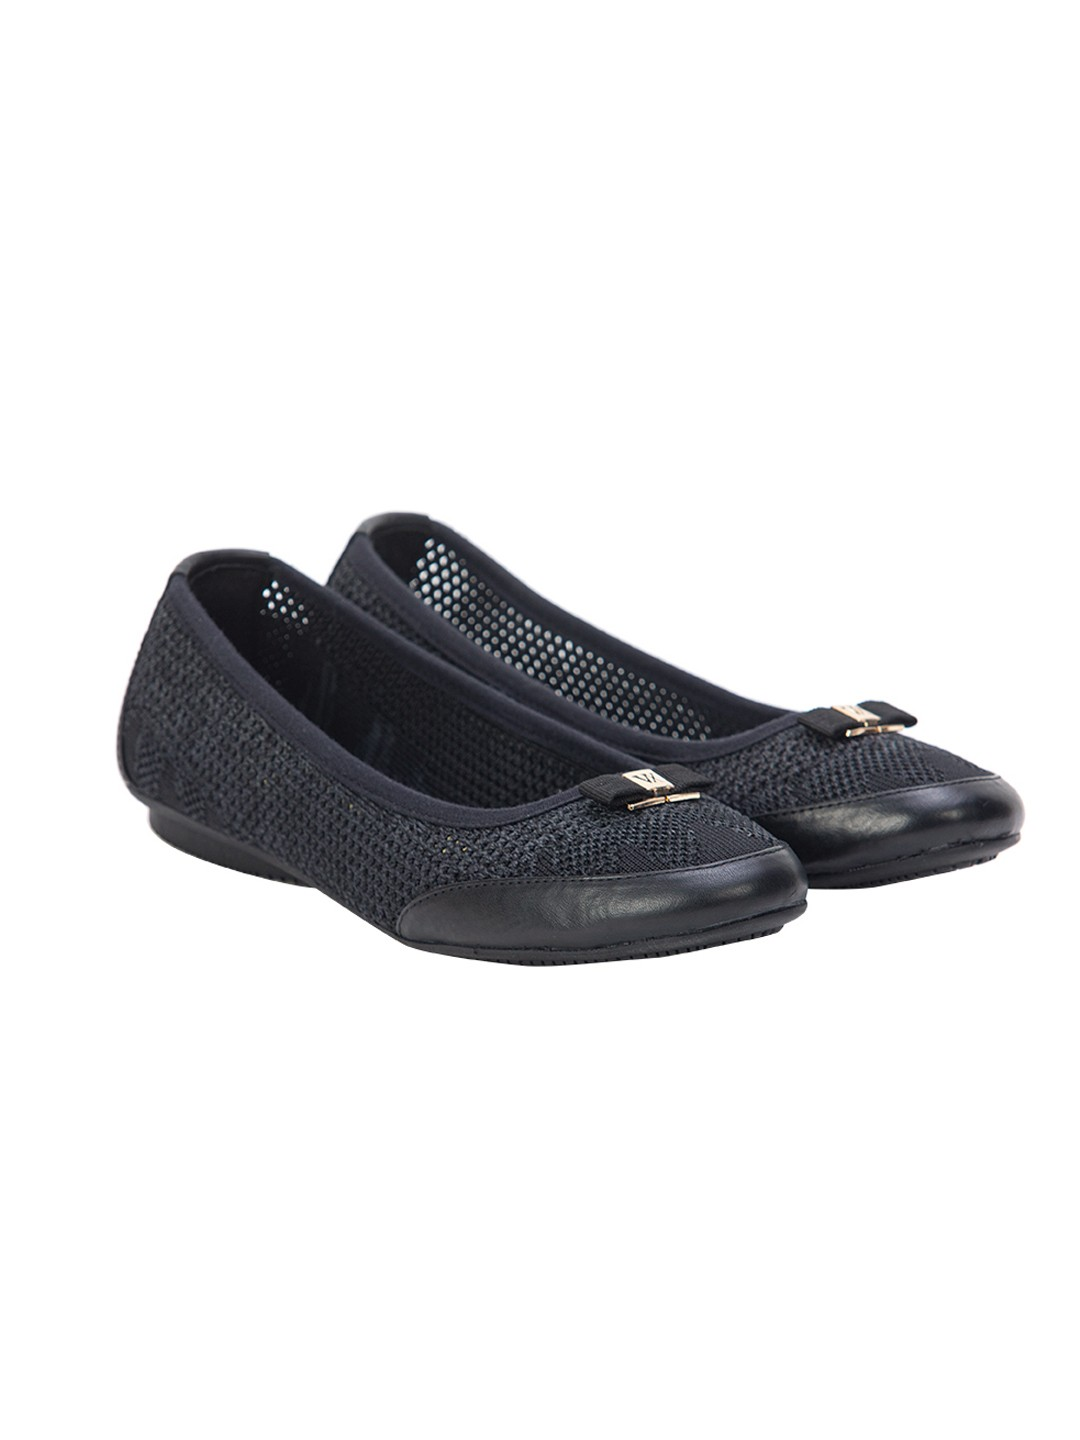 Buy Von Wellx Anise Comfort Black Belly Online in Tamil Nadu